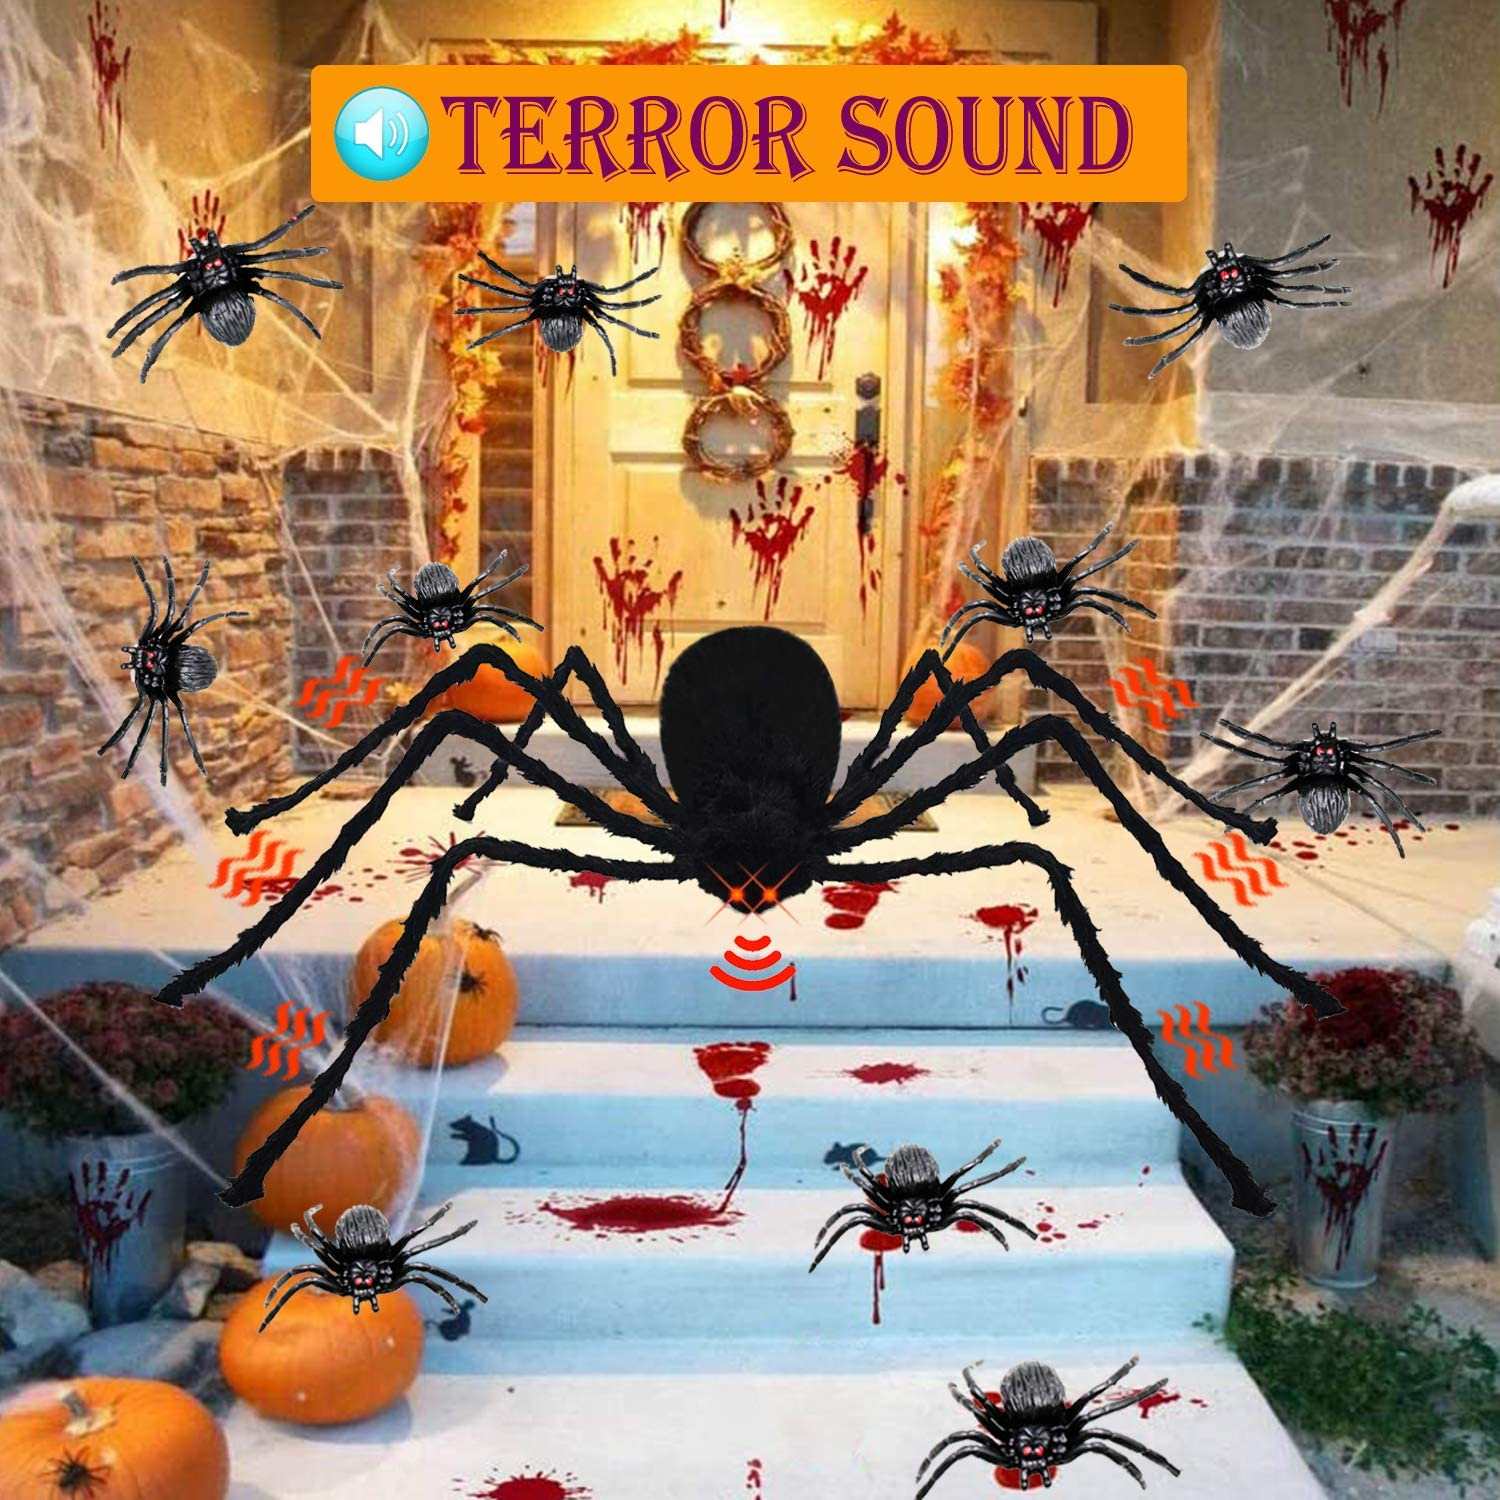 CRRXIN Halloween Decorations Giant Spider 4.1ft with Spider Web, LED Scary Red Eyes with Spooky Sound, Large Fake Spider for Halloween Garden Decorations Haunted House Decor